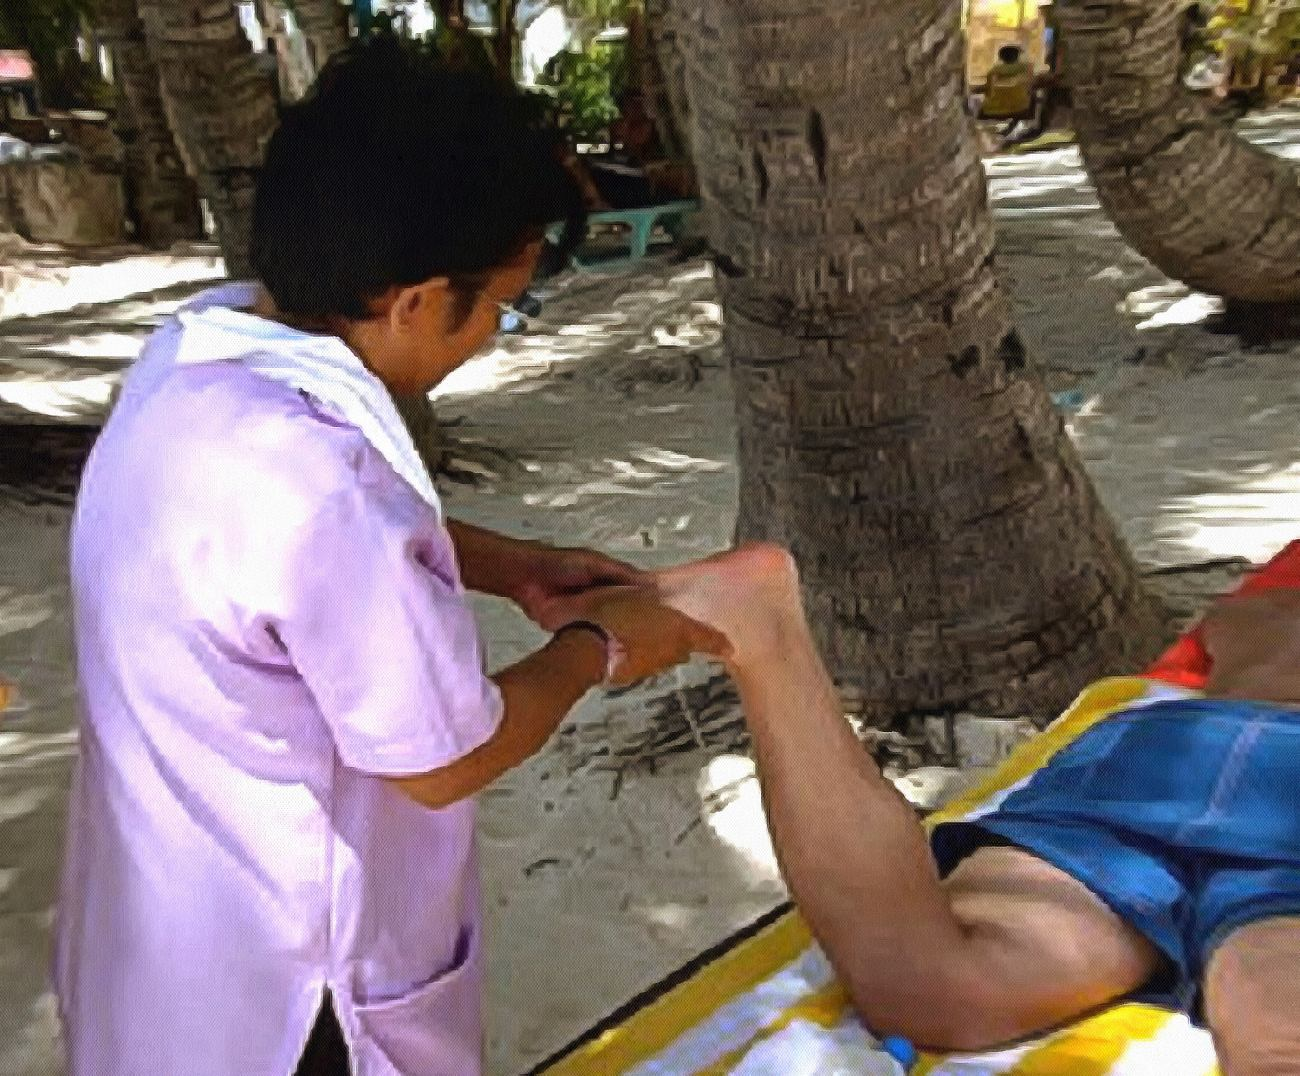 Foot massage in the Philippines